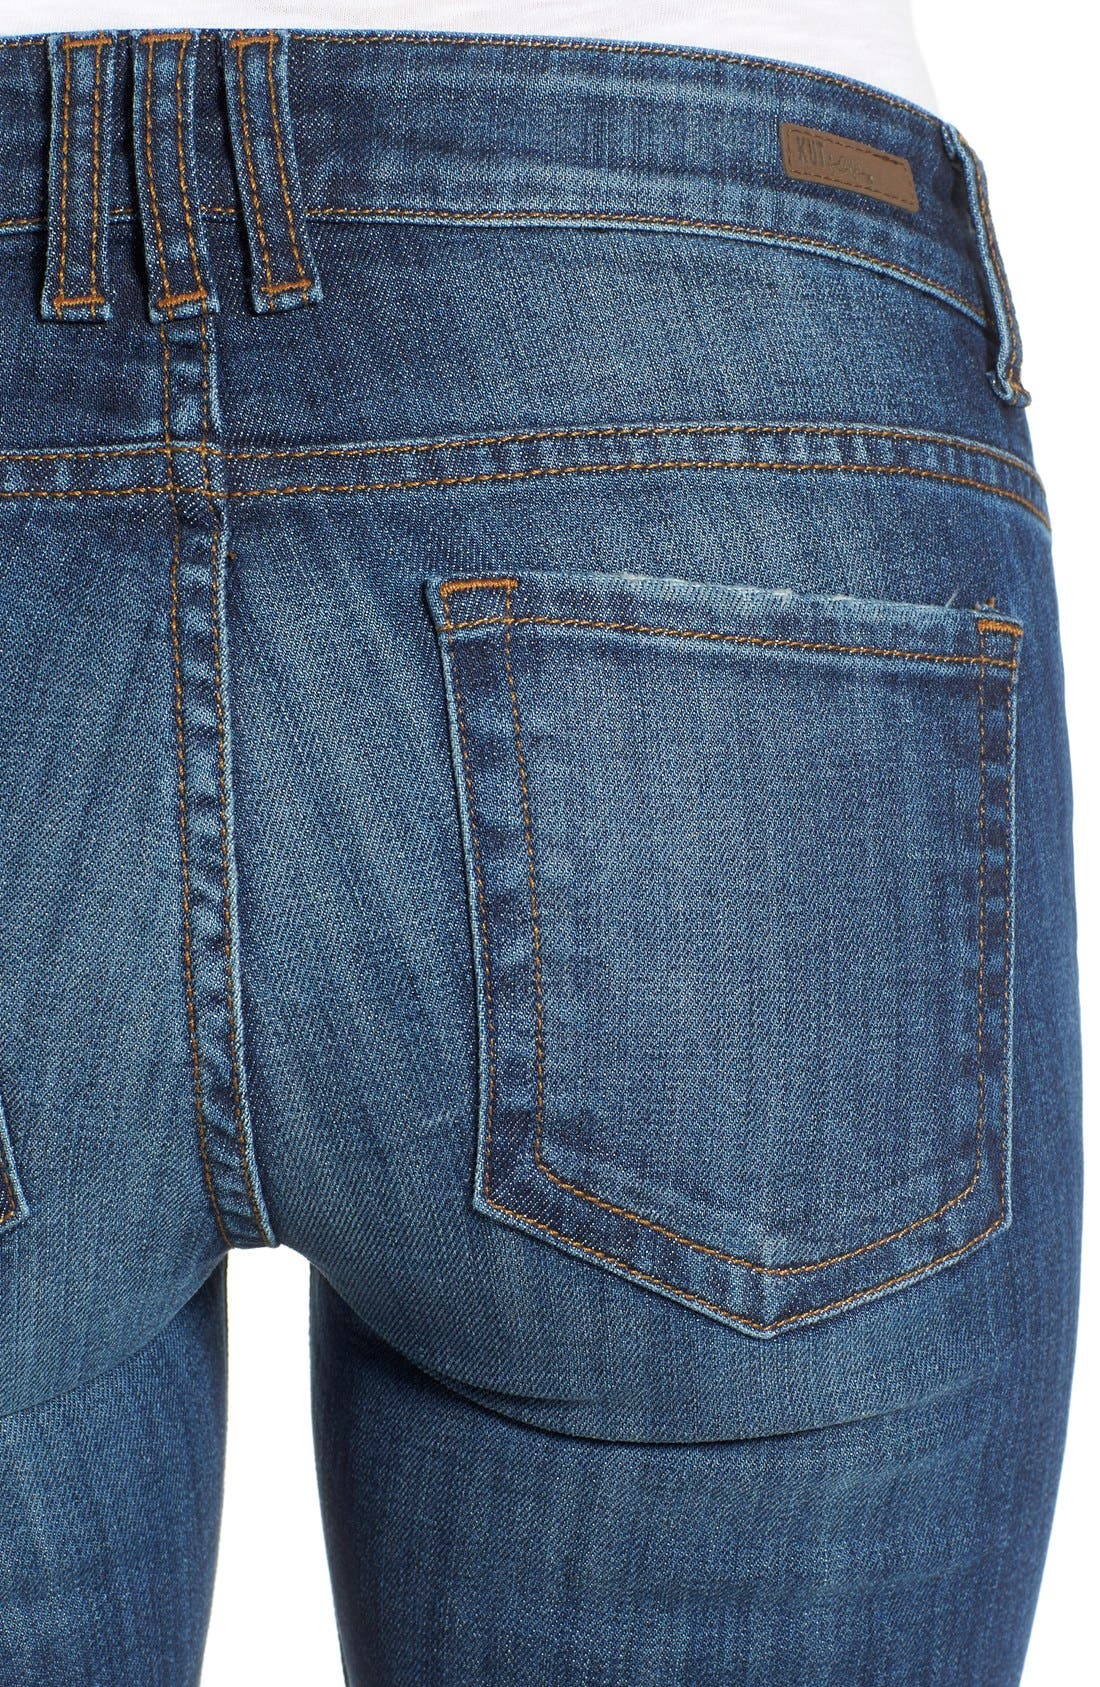 Alternate Image 4  - KUT from the Kloth 'Catherine' Distressed Stretch Boyfriend Jeans (Yearn) (Regular & Petite)